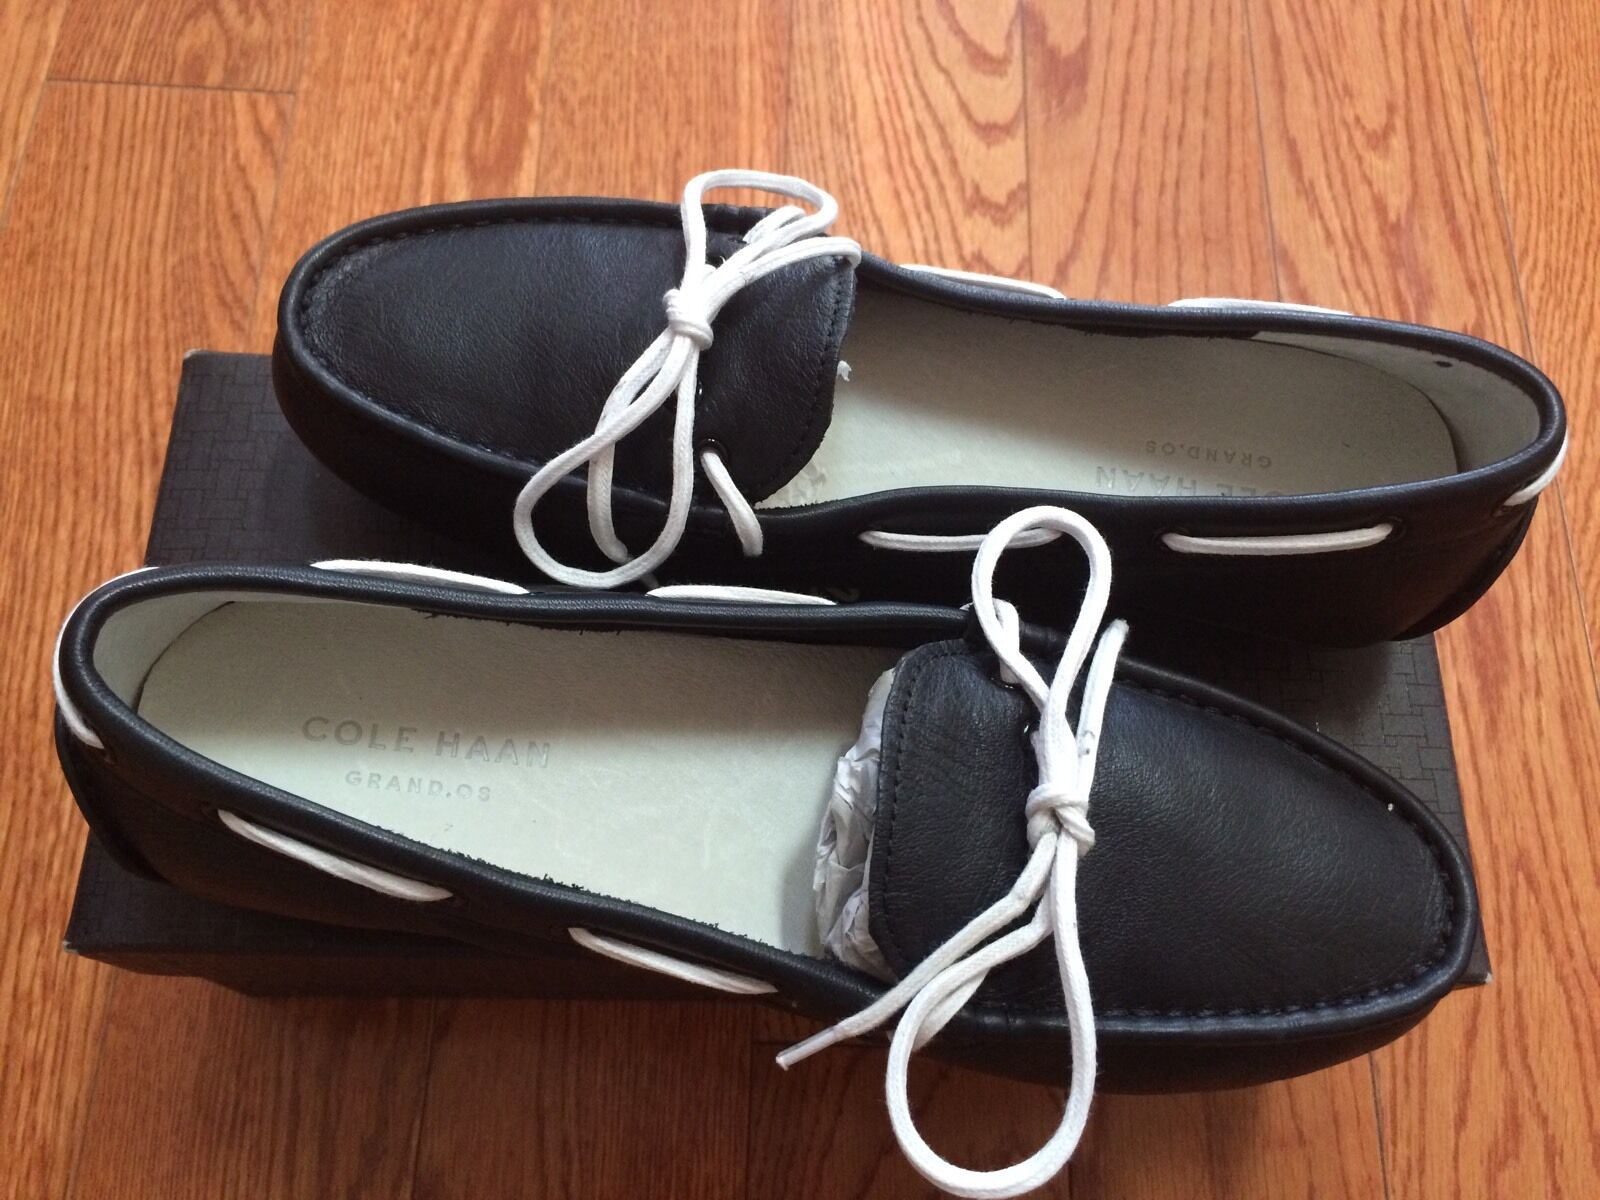 New Cole Haan Women's Slip On Casure shoes Size 6